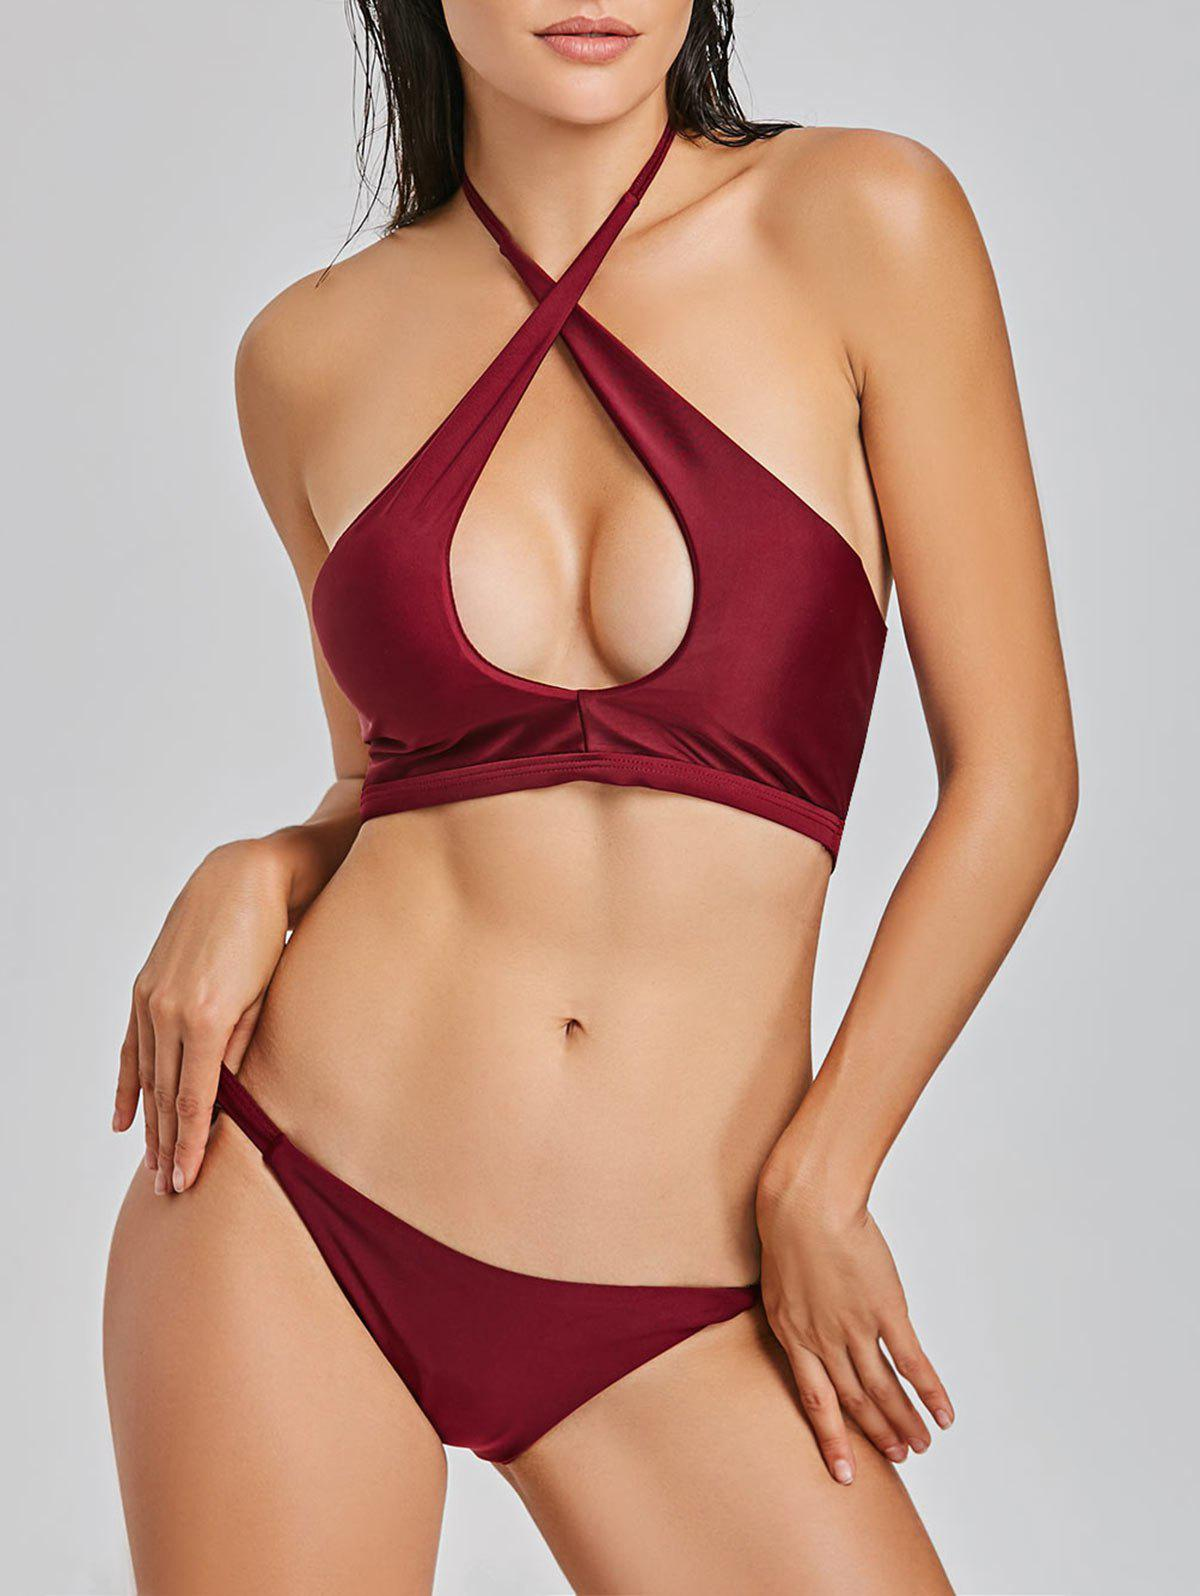 G-string Halter Keyhole Bikini Set - WINE RED M